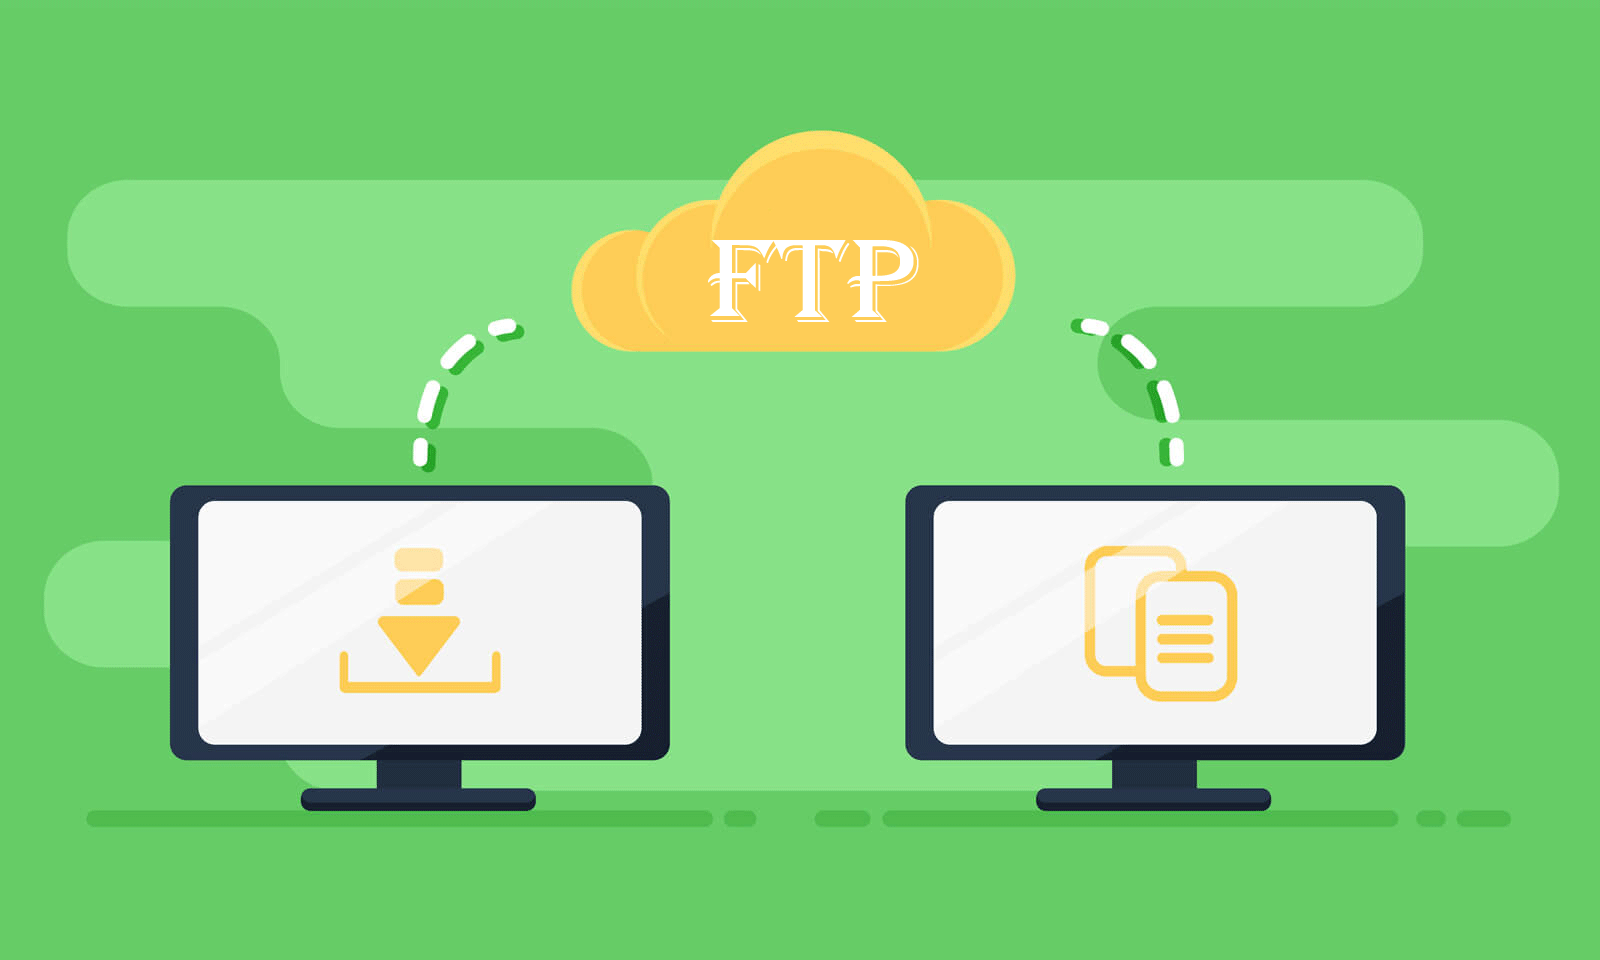 FTP Commands for Windows - Use FTP Command Line In Windows